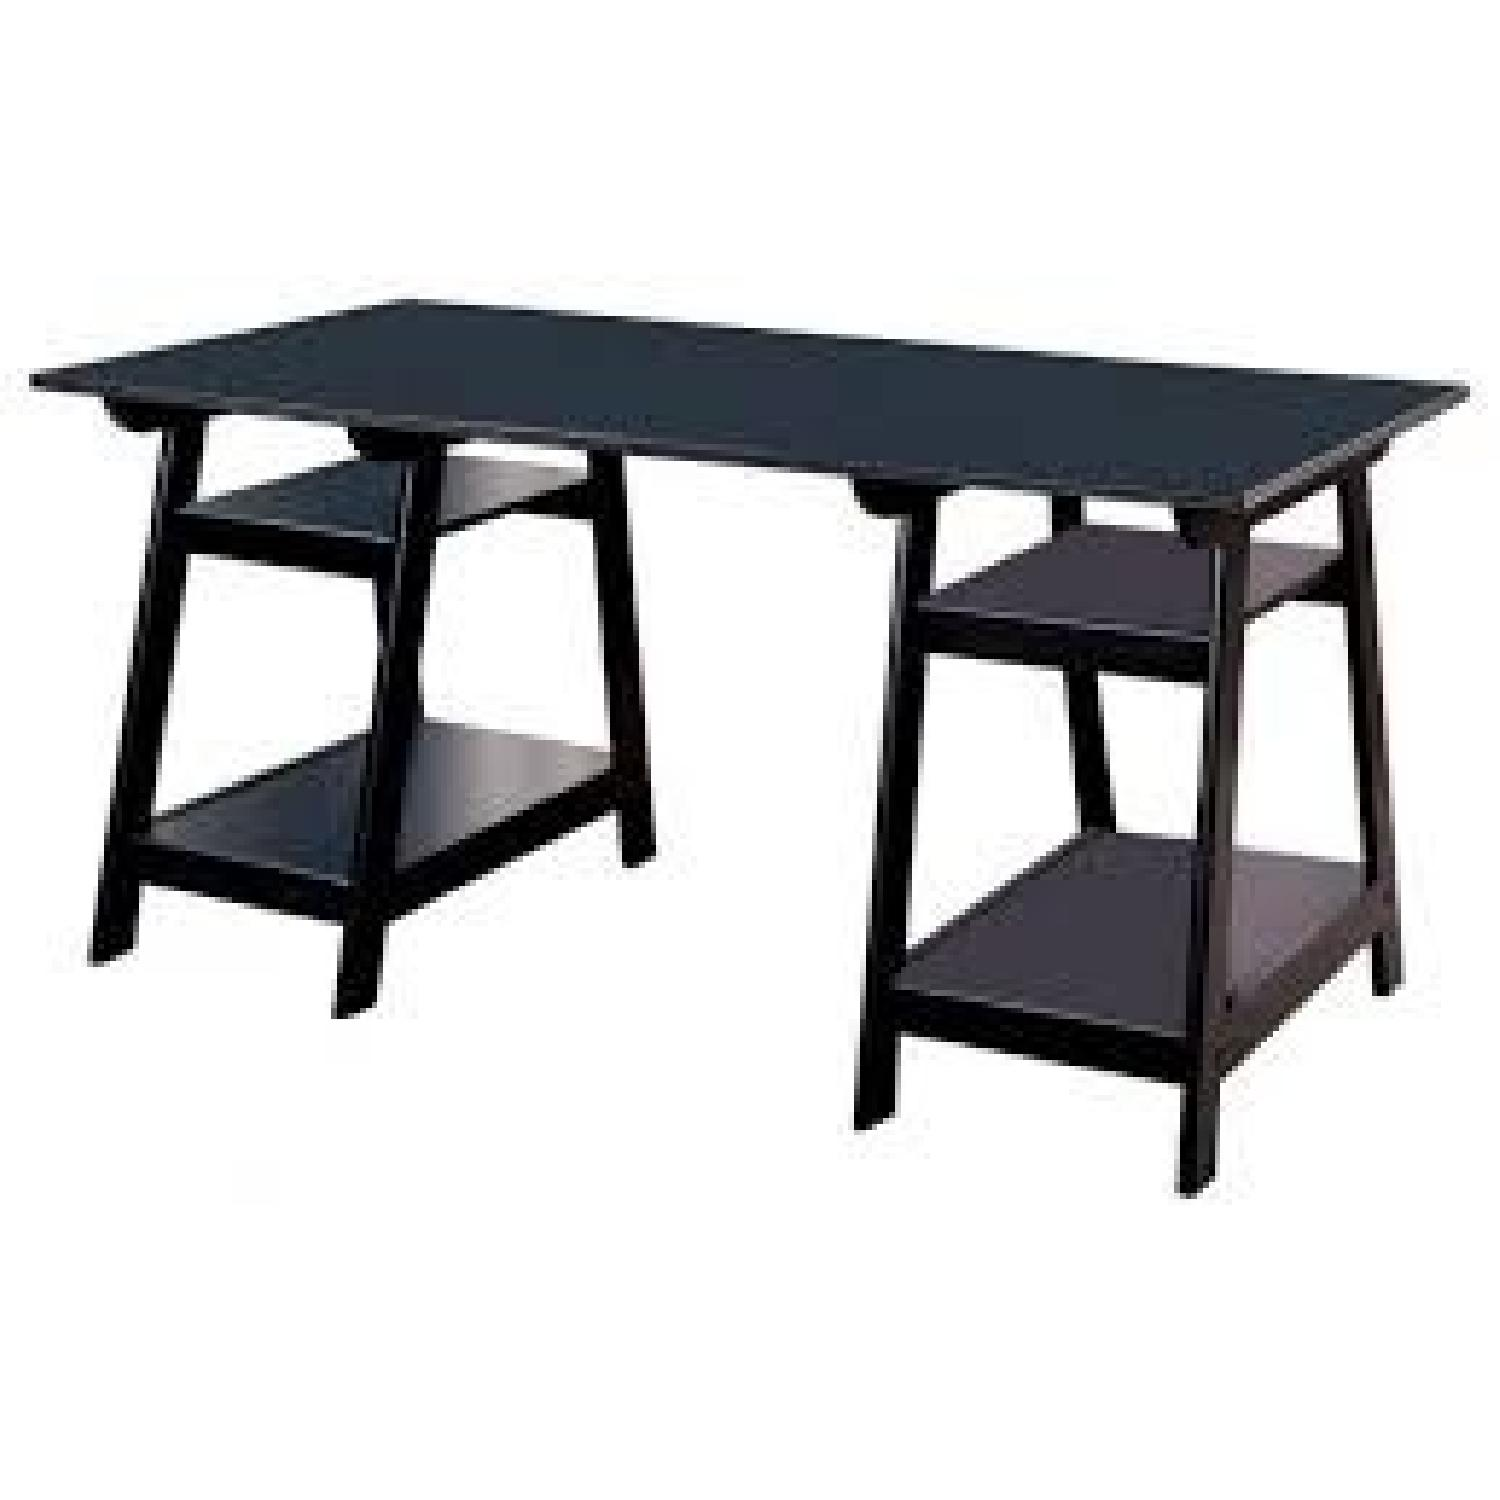 Large Writing Desk in Black Finish w/ Storage Shelves